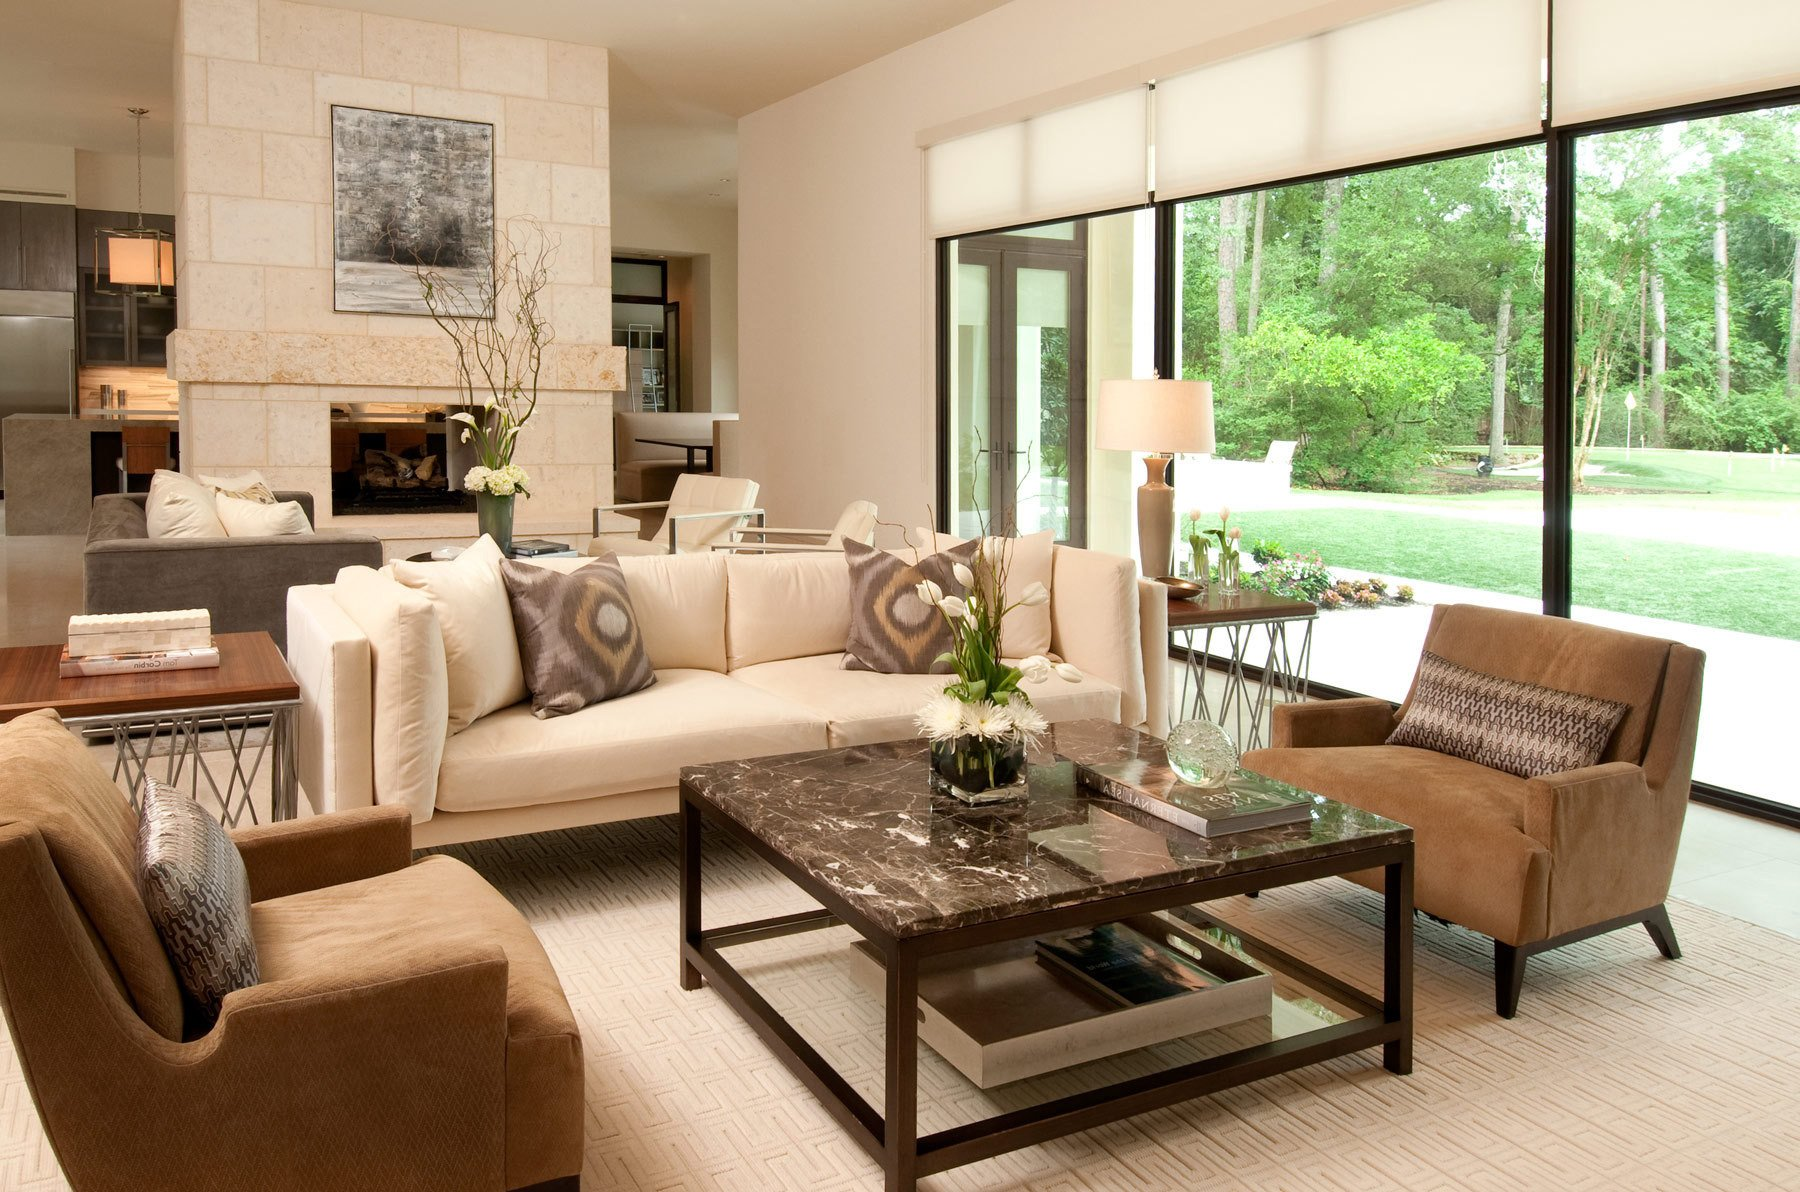 Comfortable Living Room Timeless 27 fortable Living Room Design Ideas Decoration Love